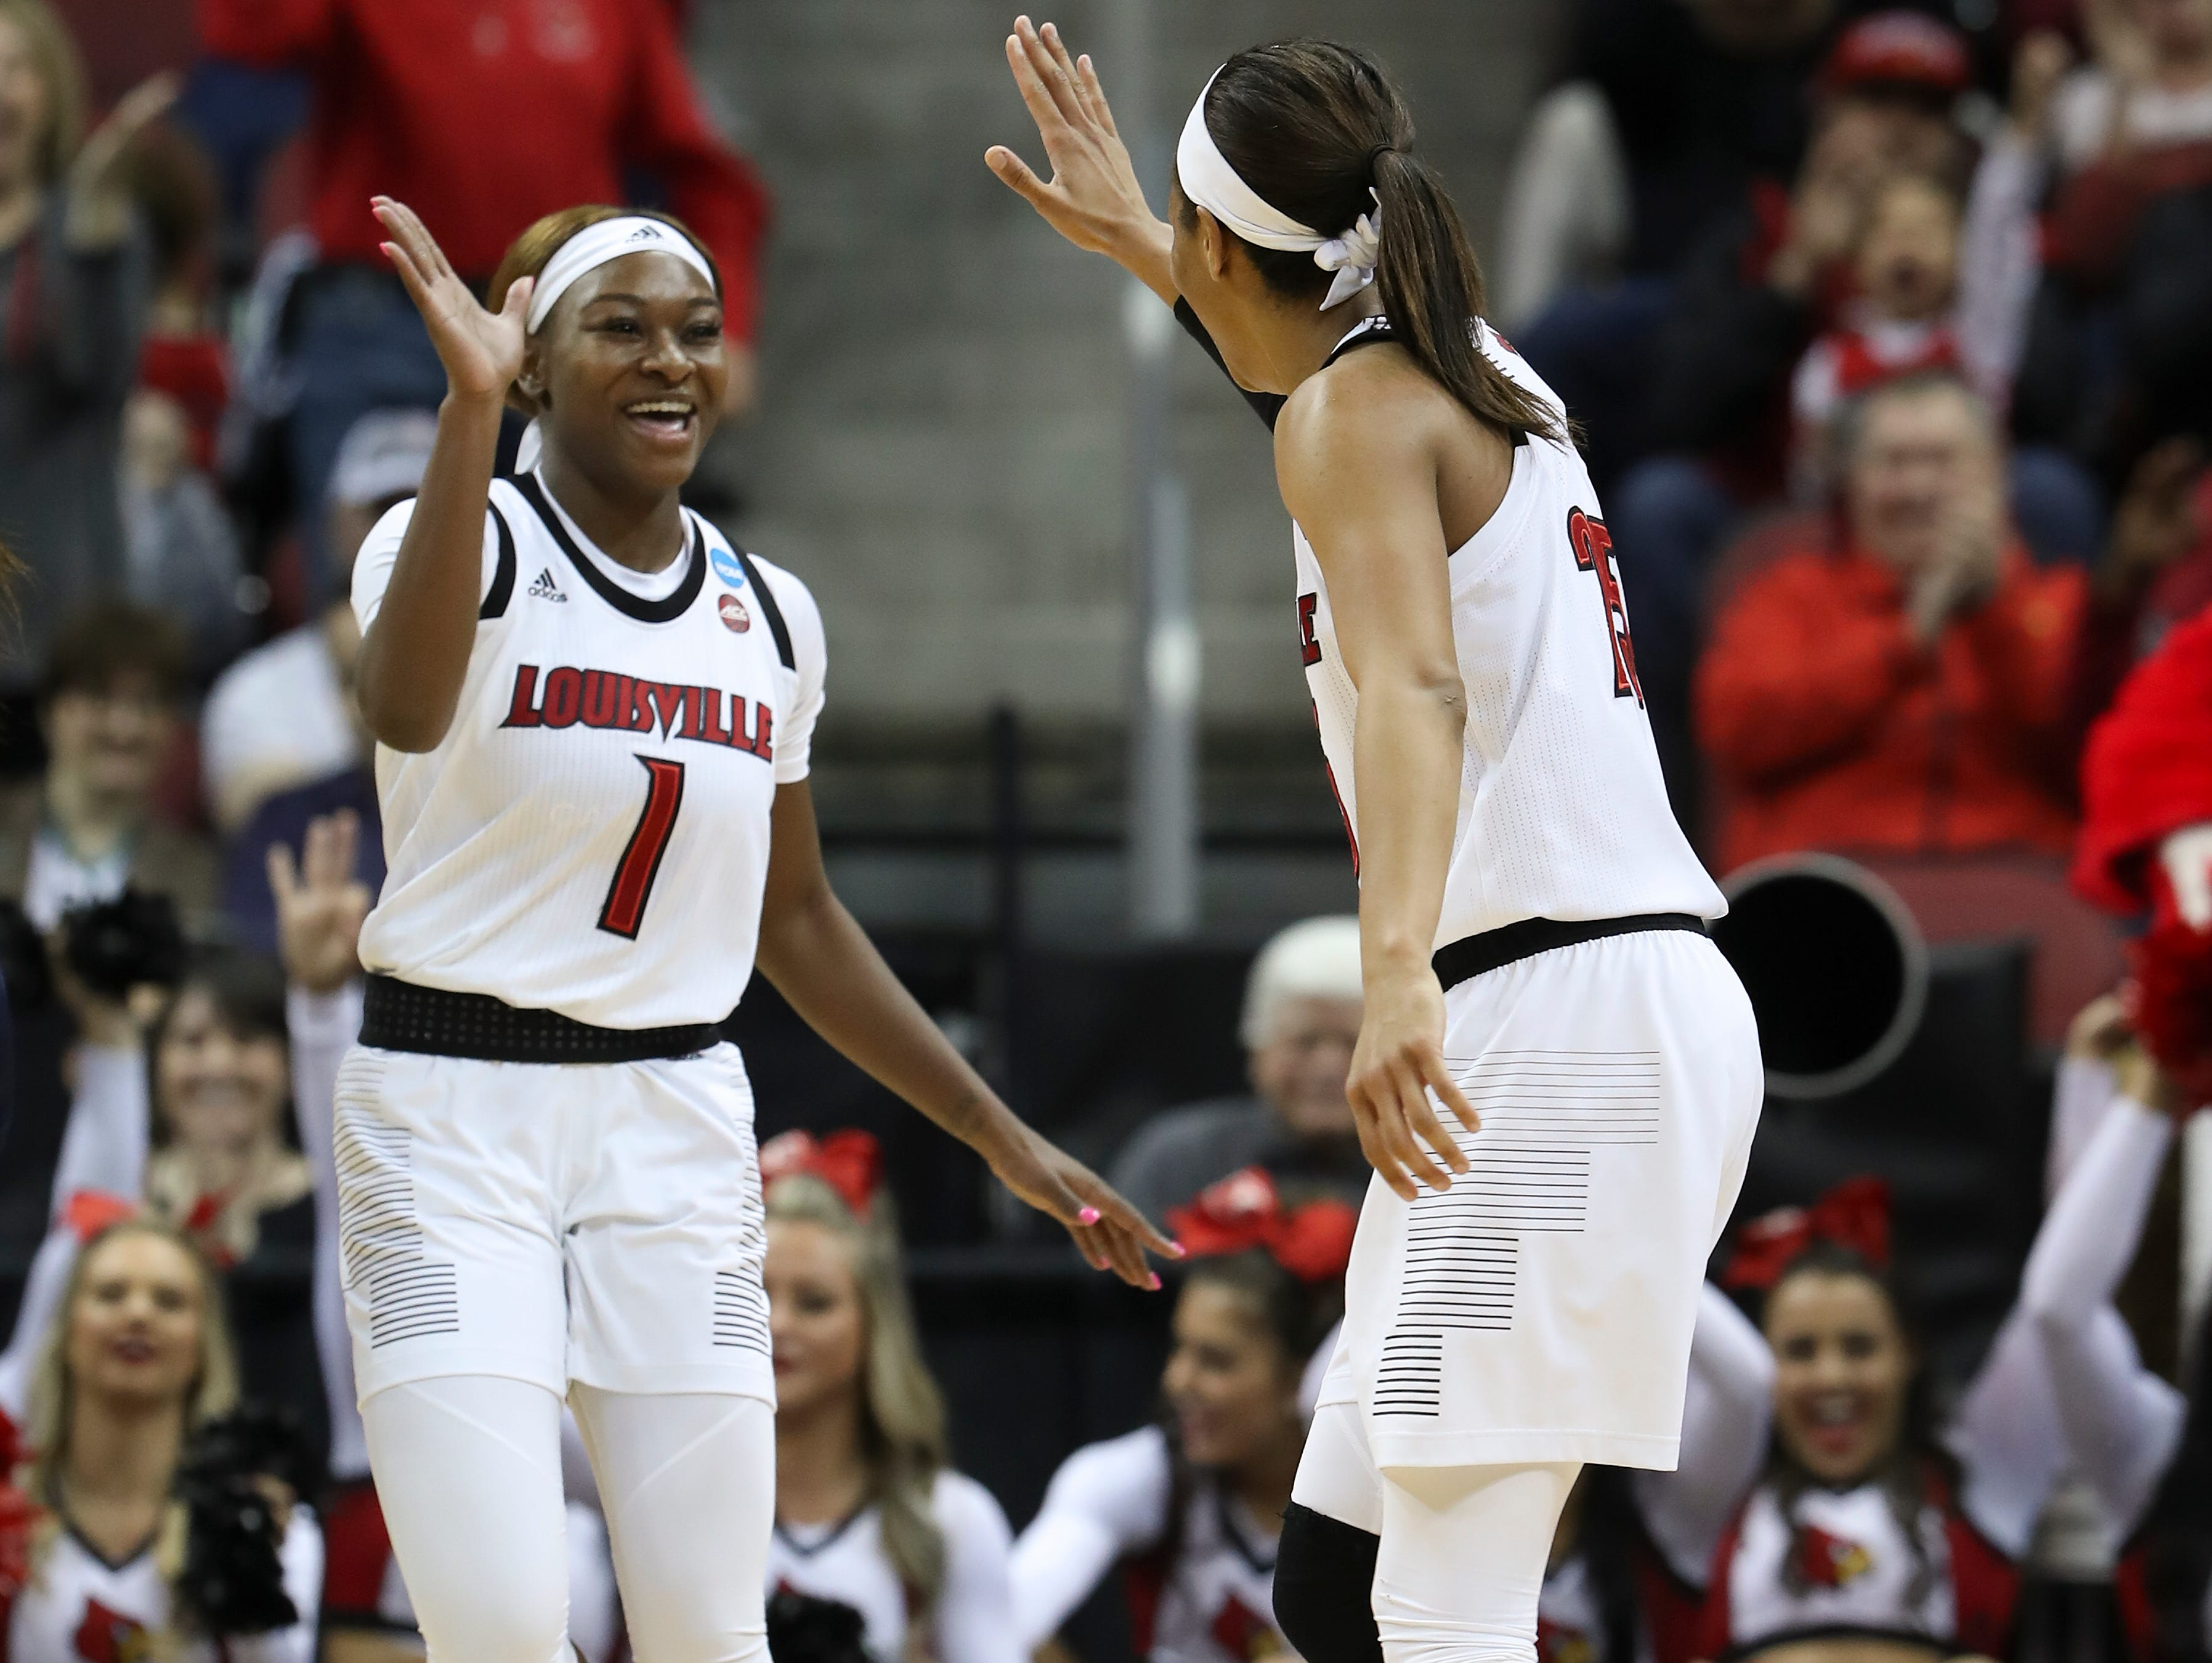 U of L's Dana Evans (1) and Asia Durr (25) celebrate a run against Michigan in the second round of their NCAA Tournament game at the Yum Center.  Mar. 24, 2019